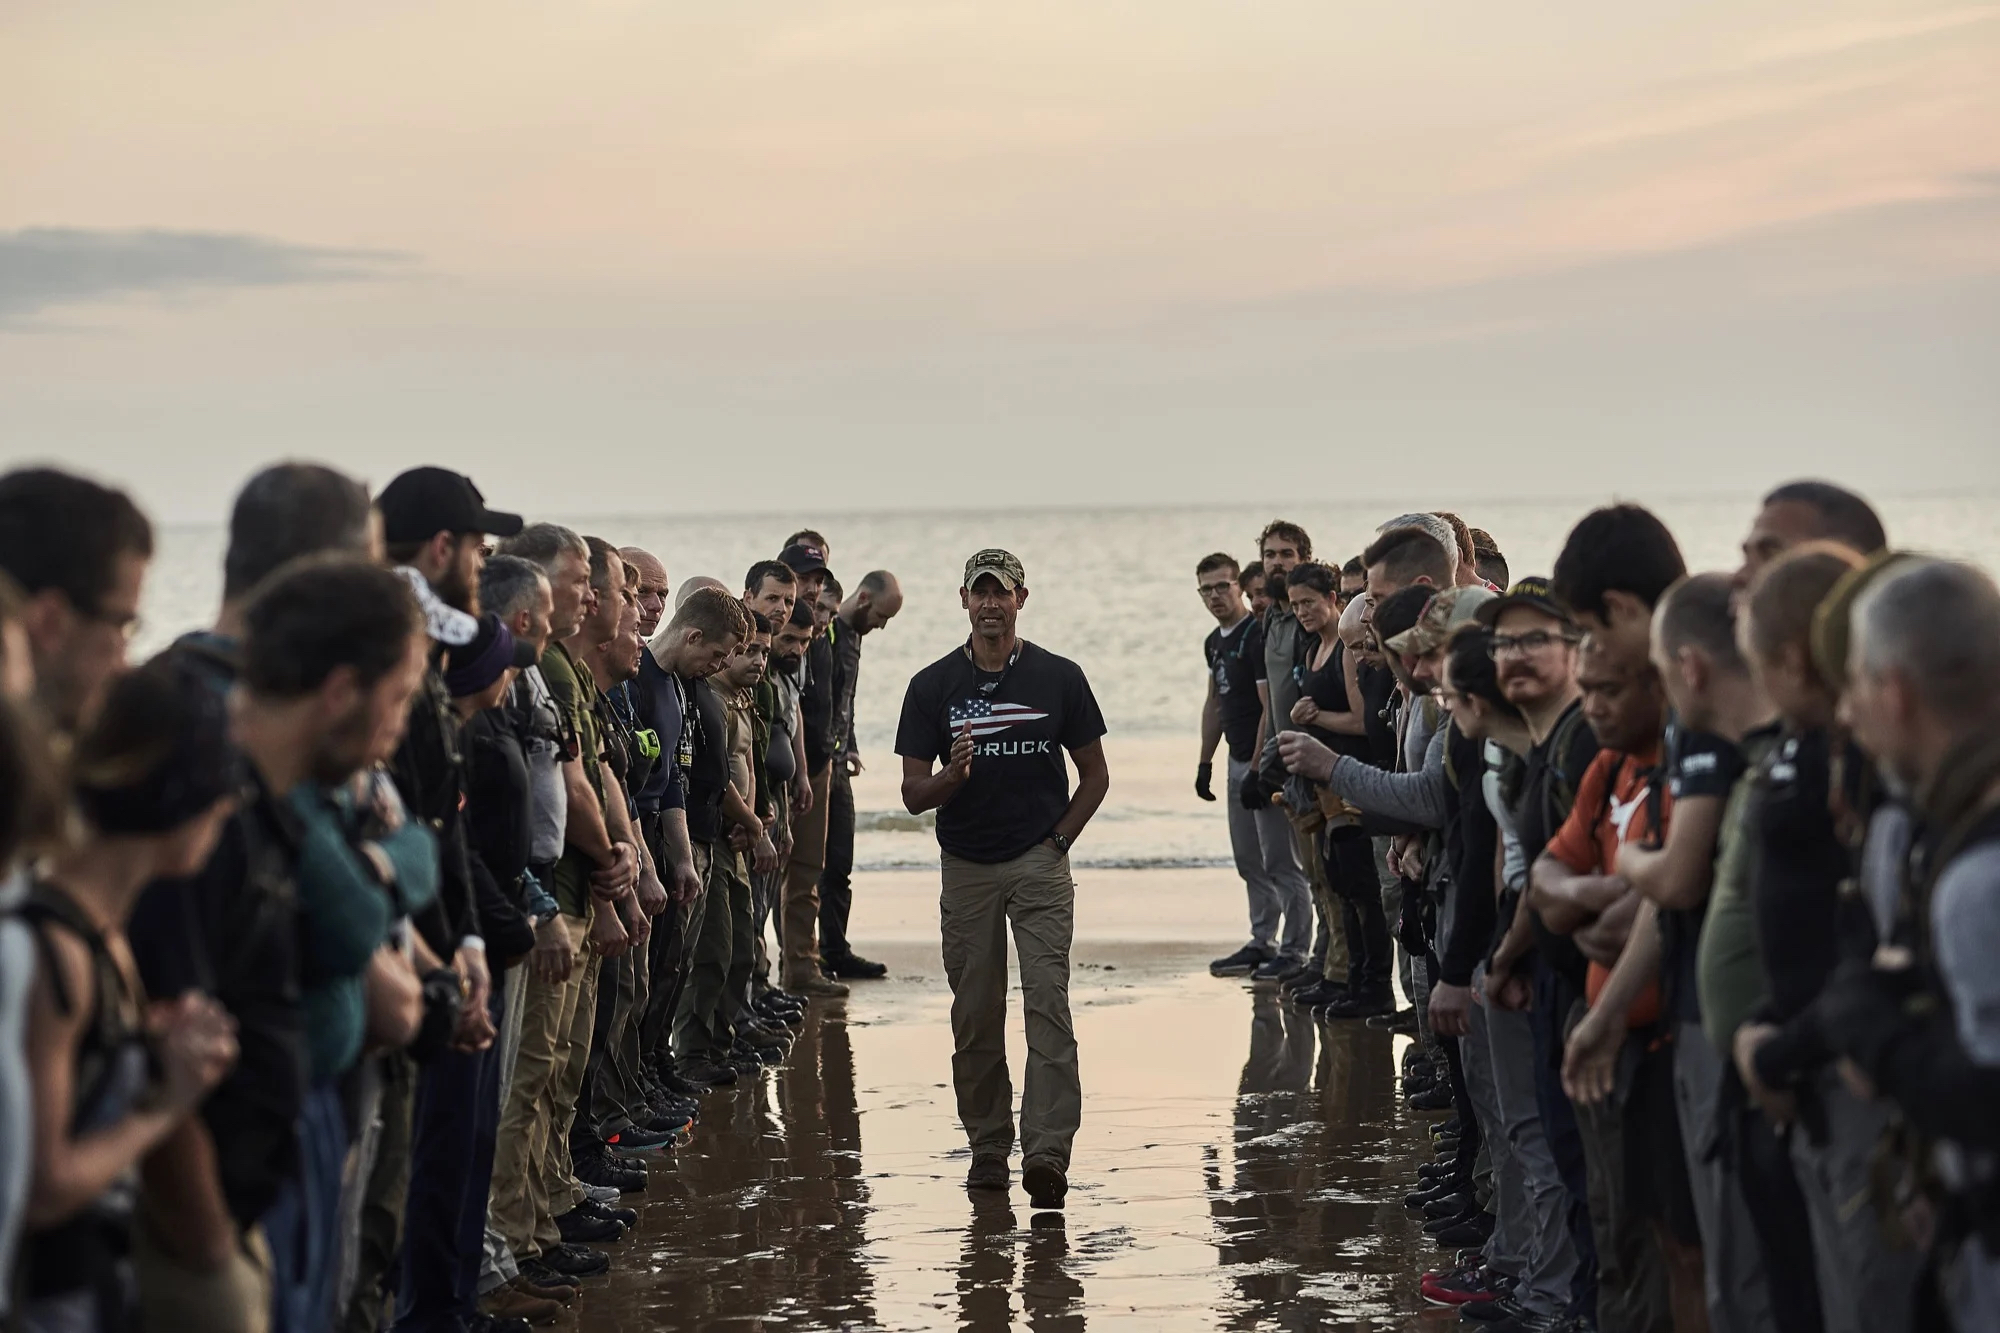 GoRuck events are growing in popularity